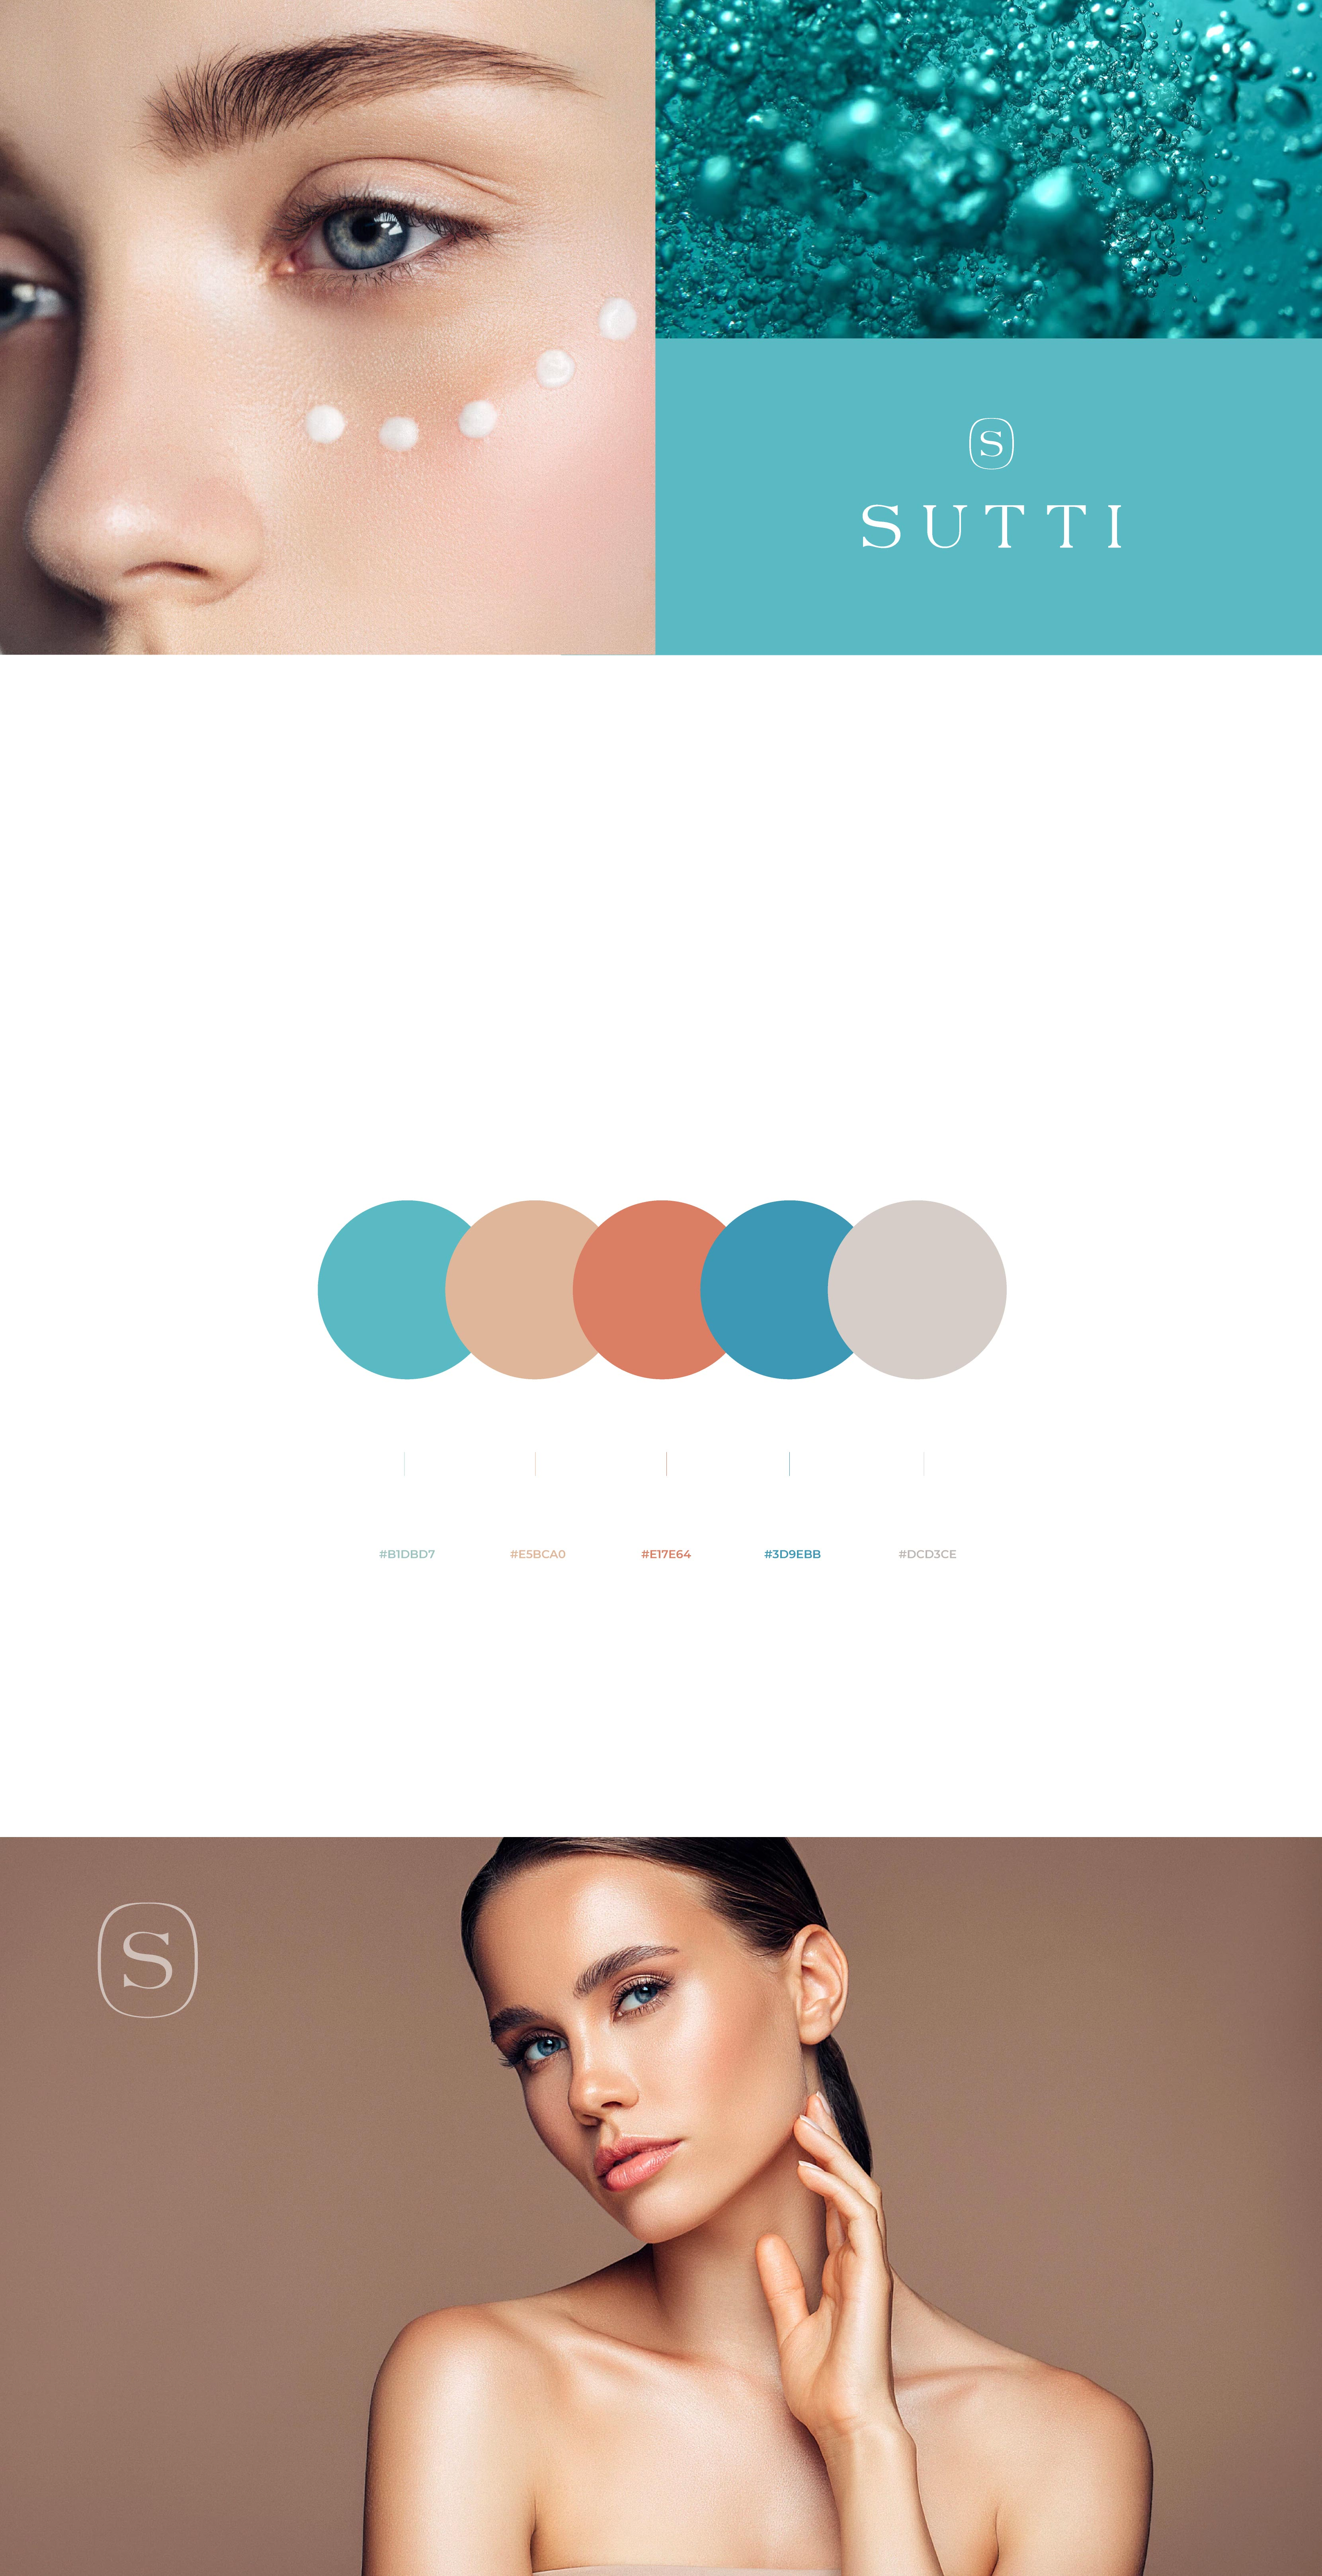 Beauty brands, care brands color chart - Sutti Cosmetics